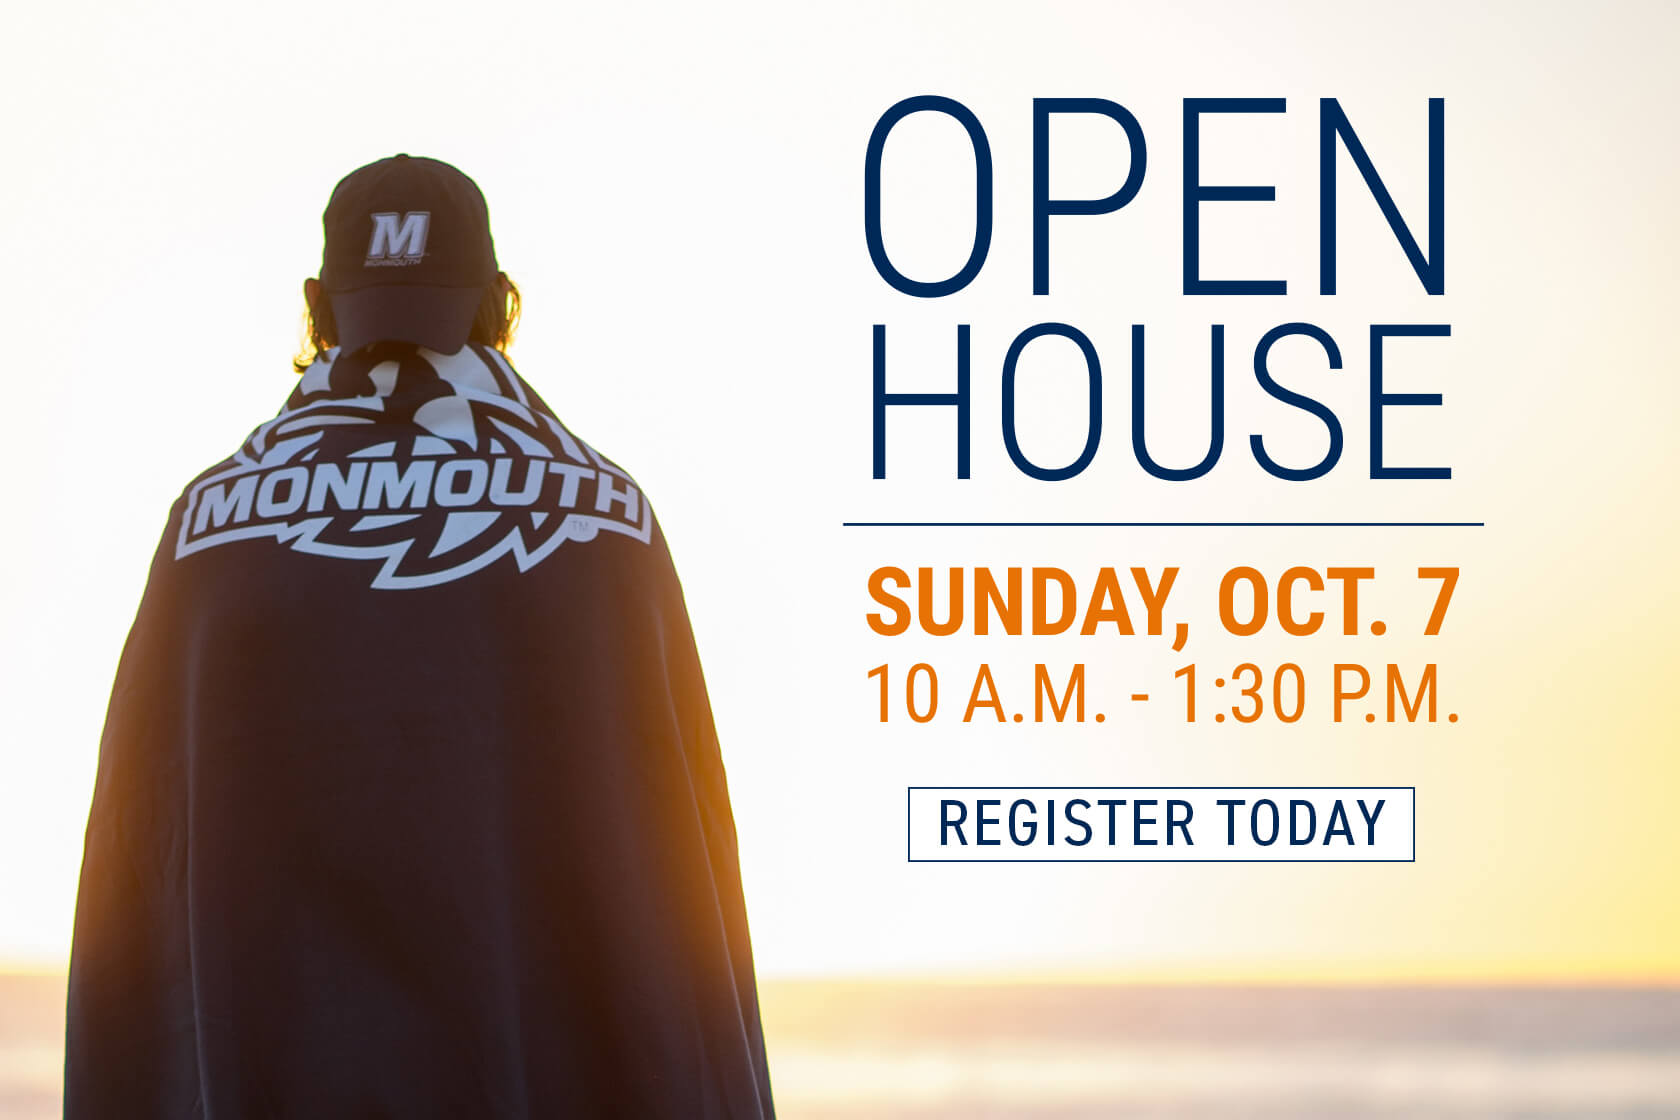 Open House, Sunday October 7 from 10 a.m. to 1:30 p.m. Register Today